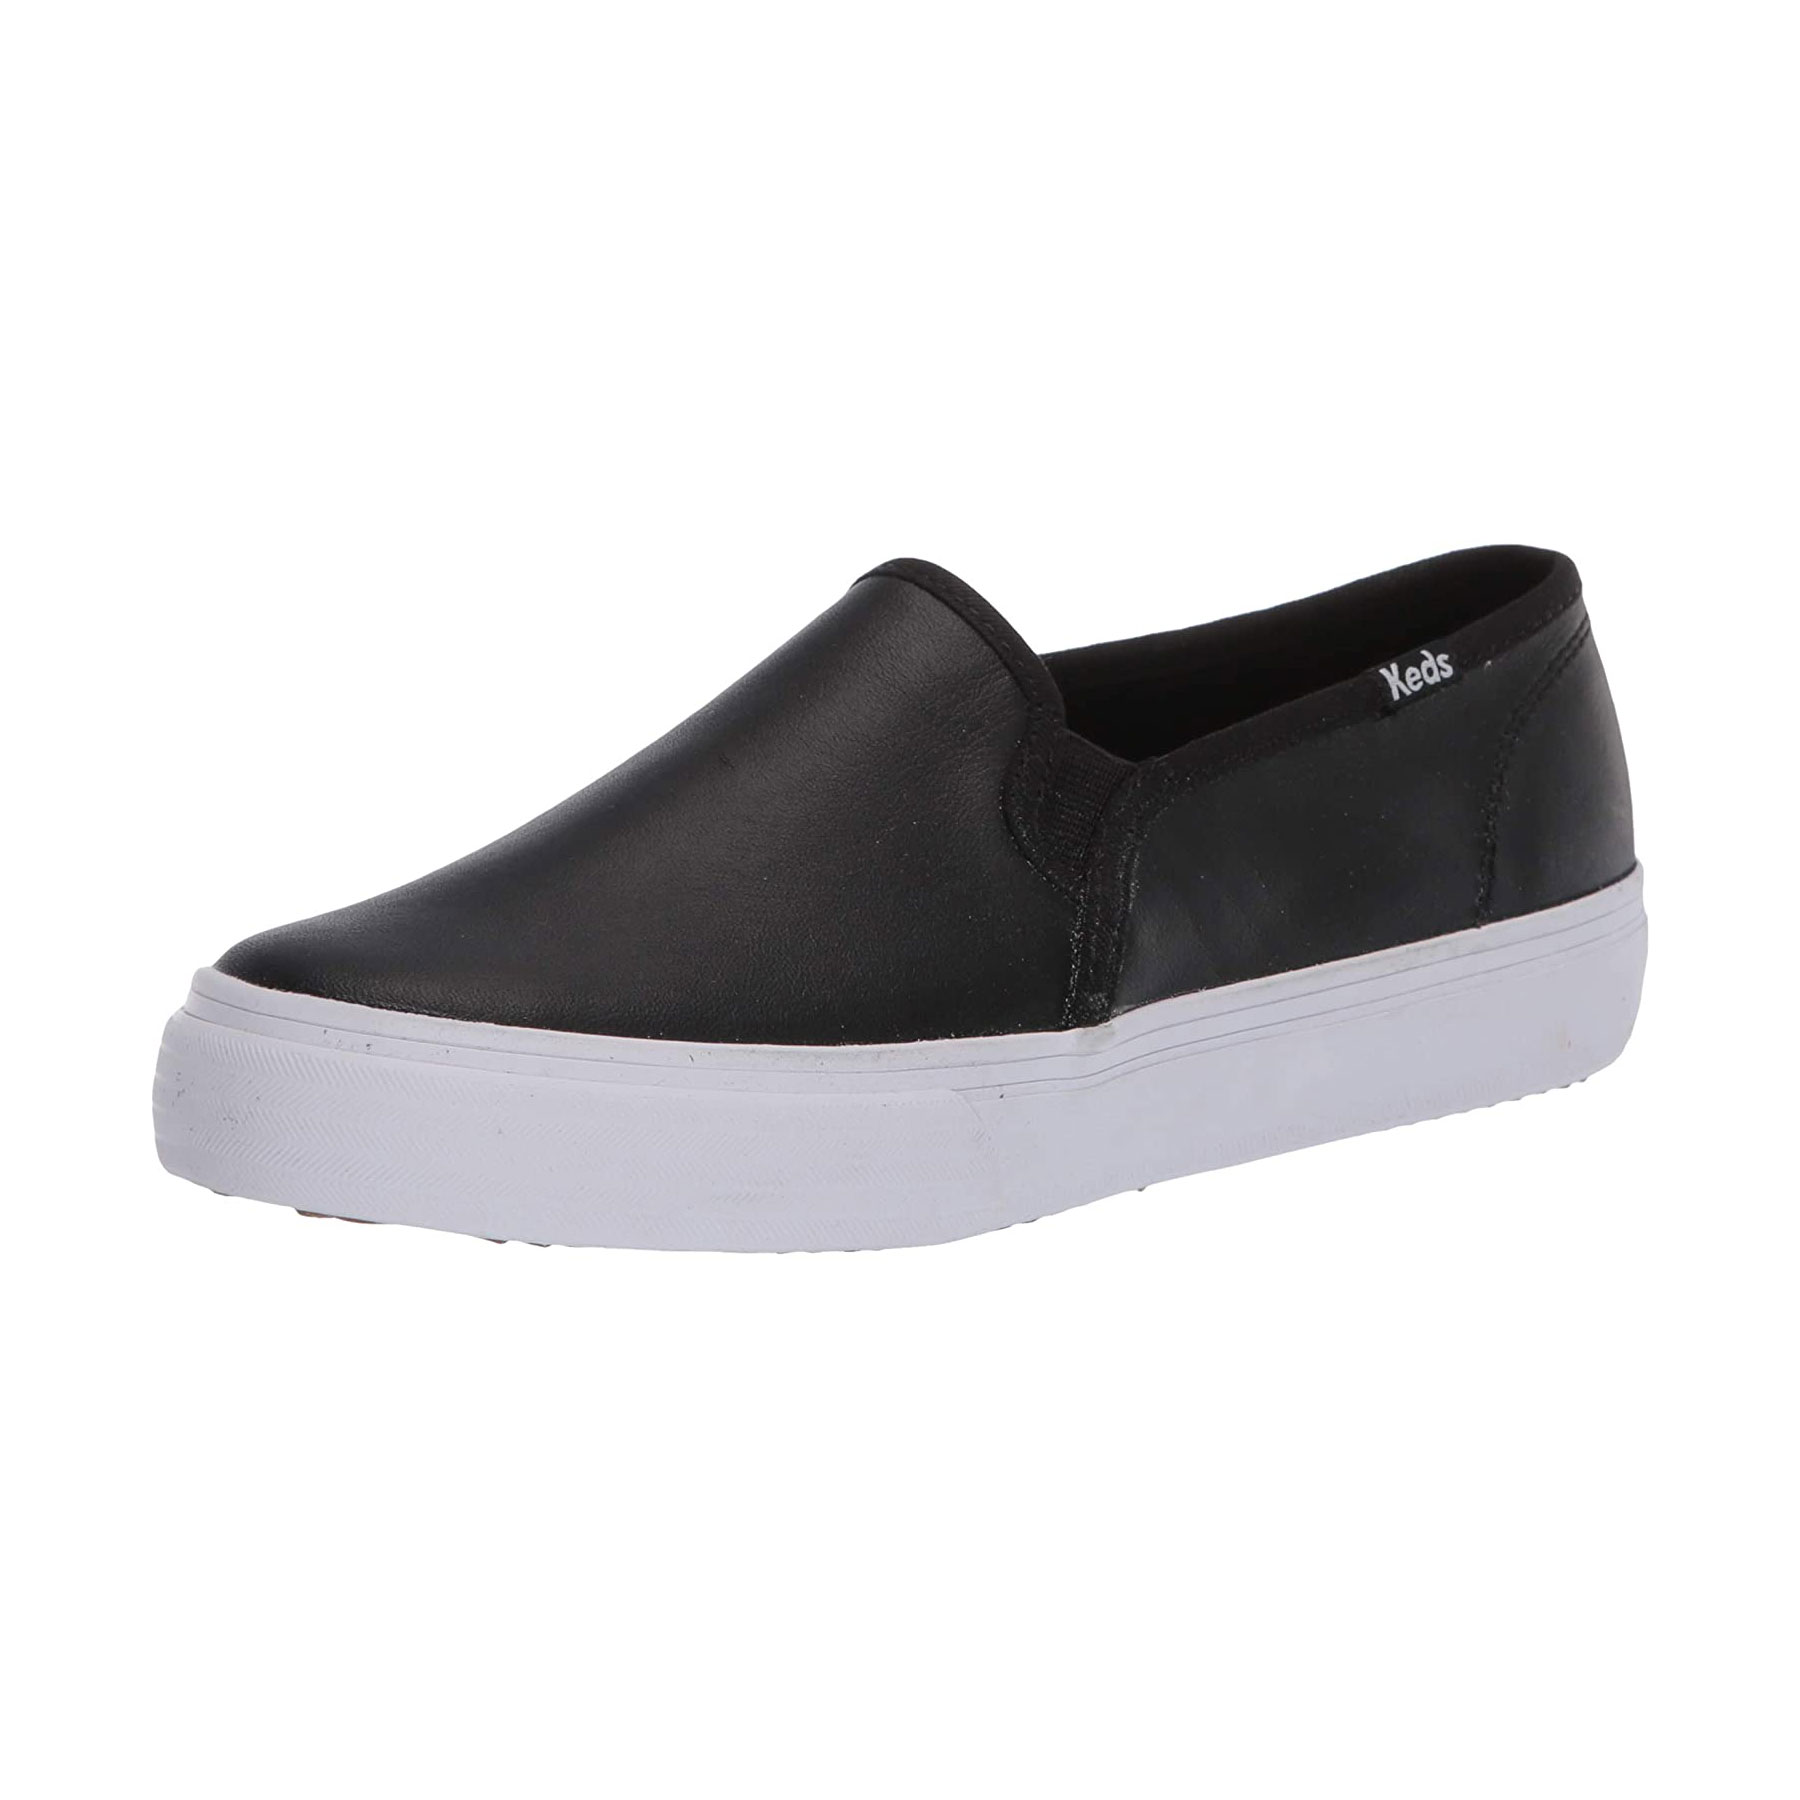 Keds Double Decker Leather Sneakers